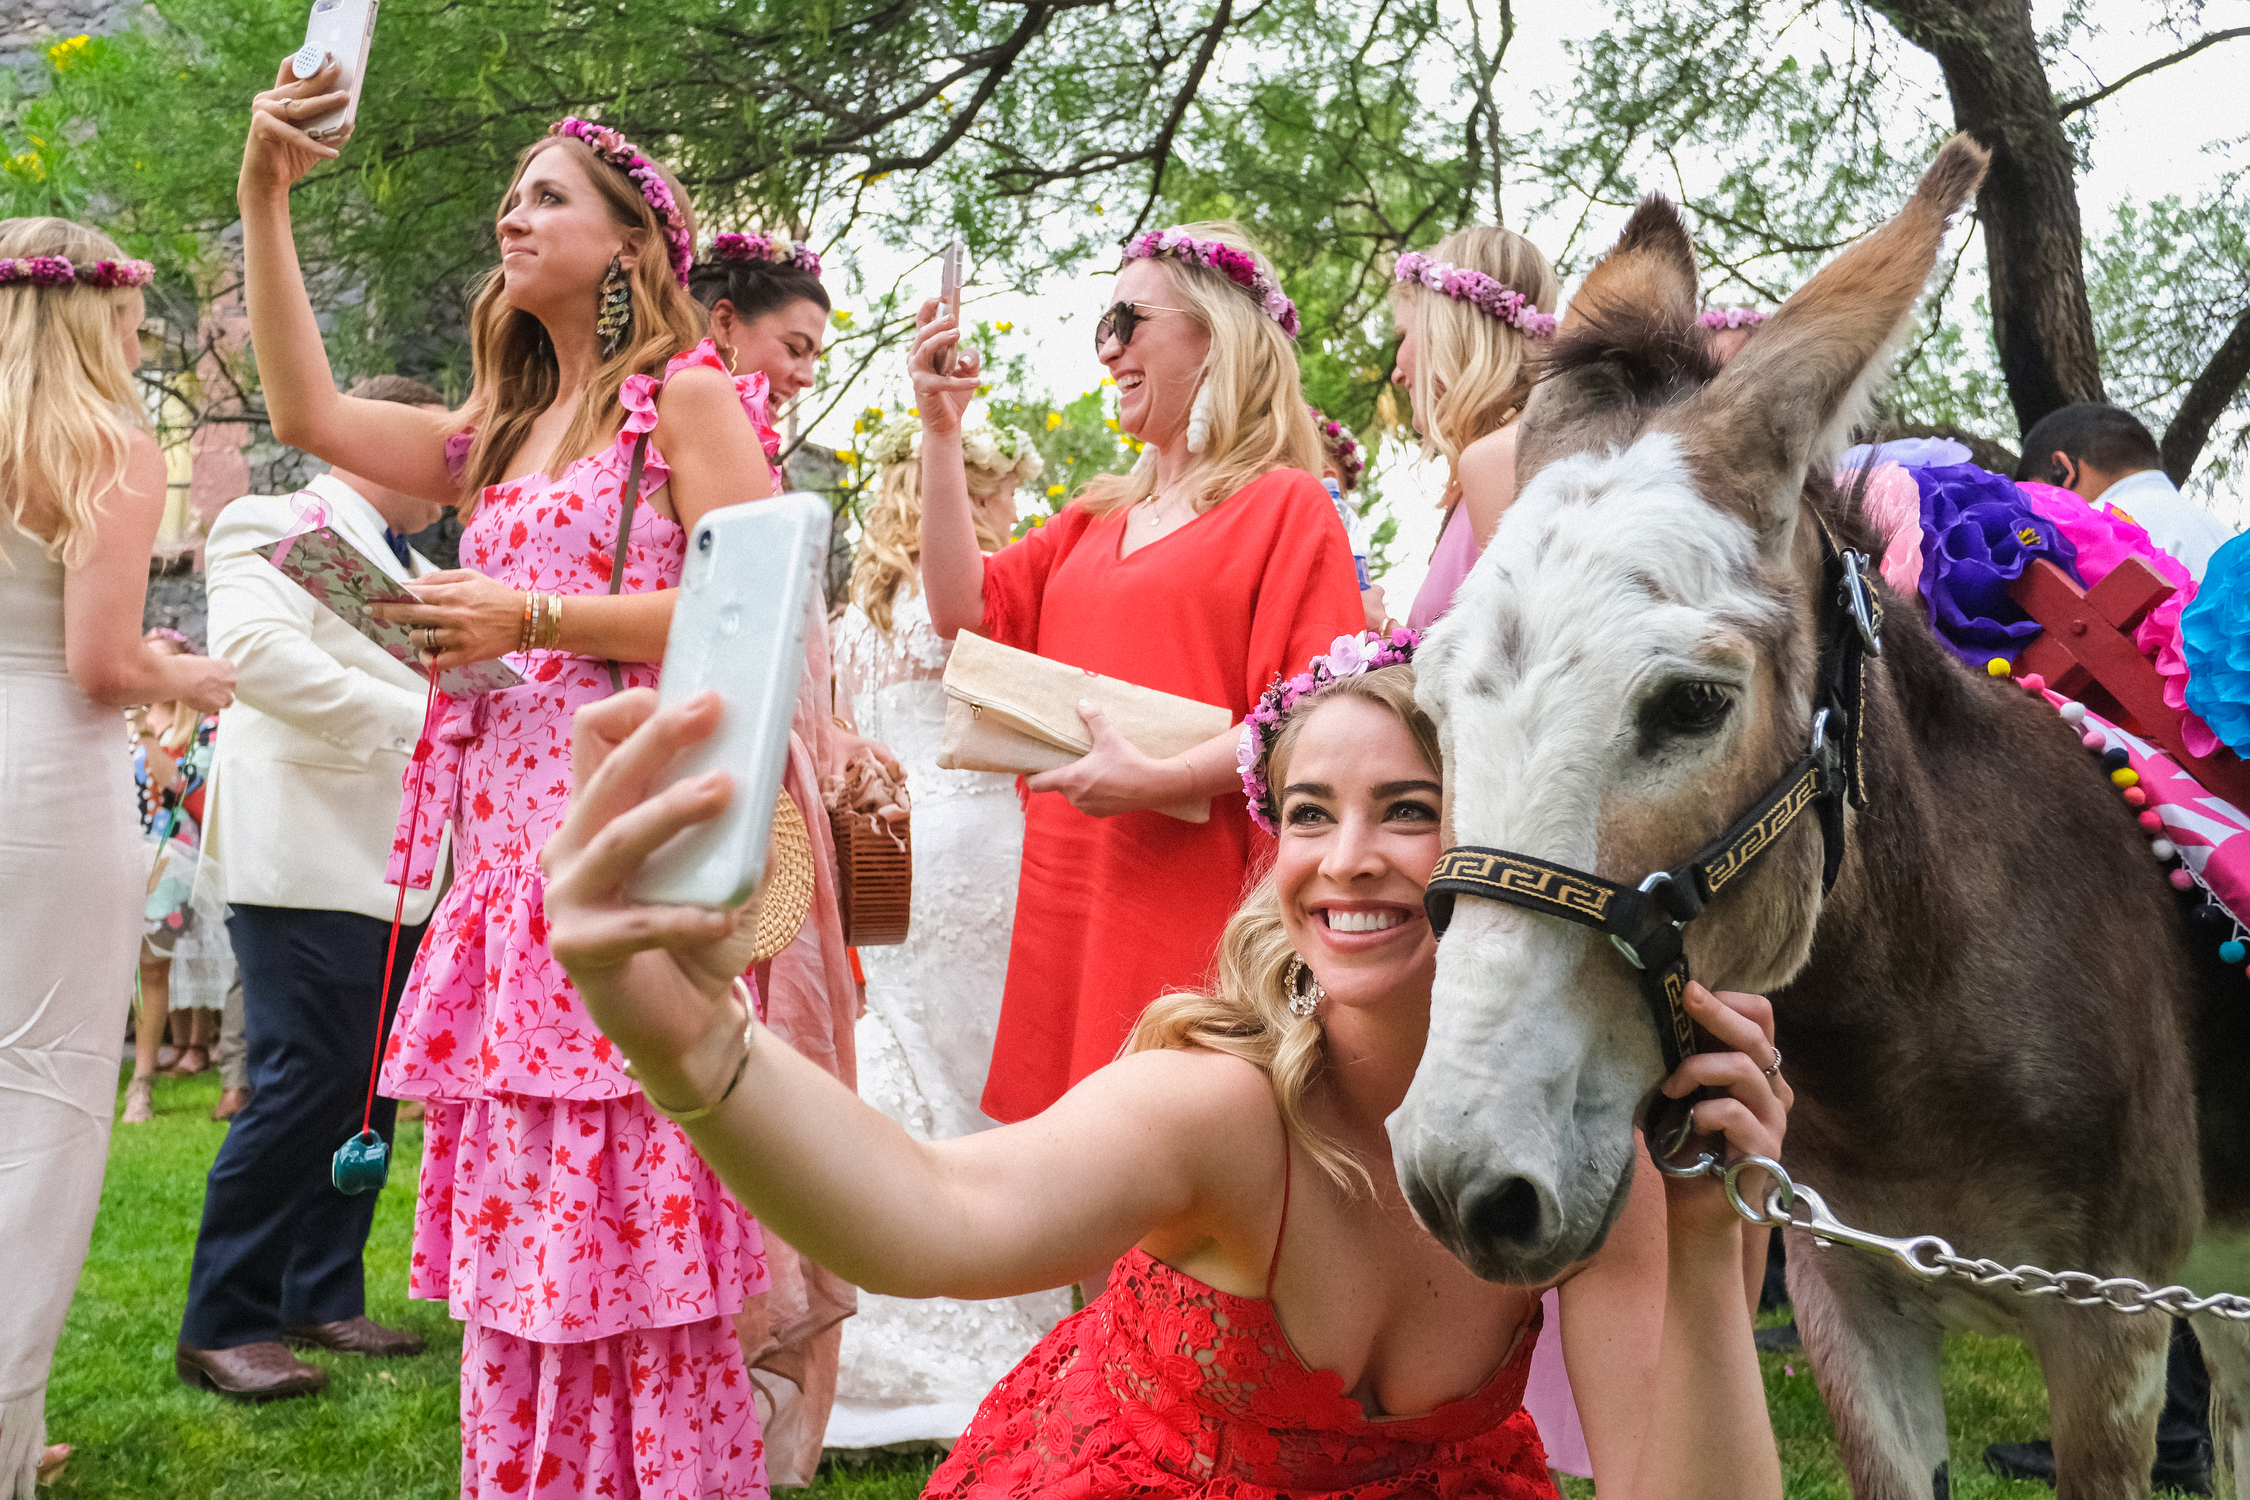 selfies-with-donkey-annie-bang